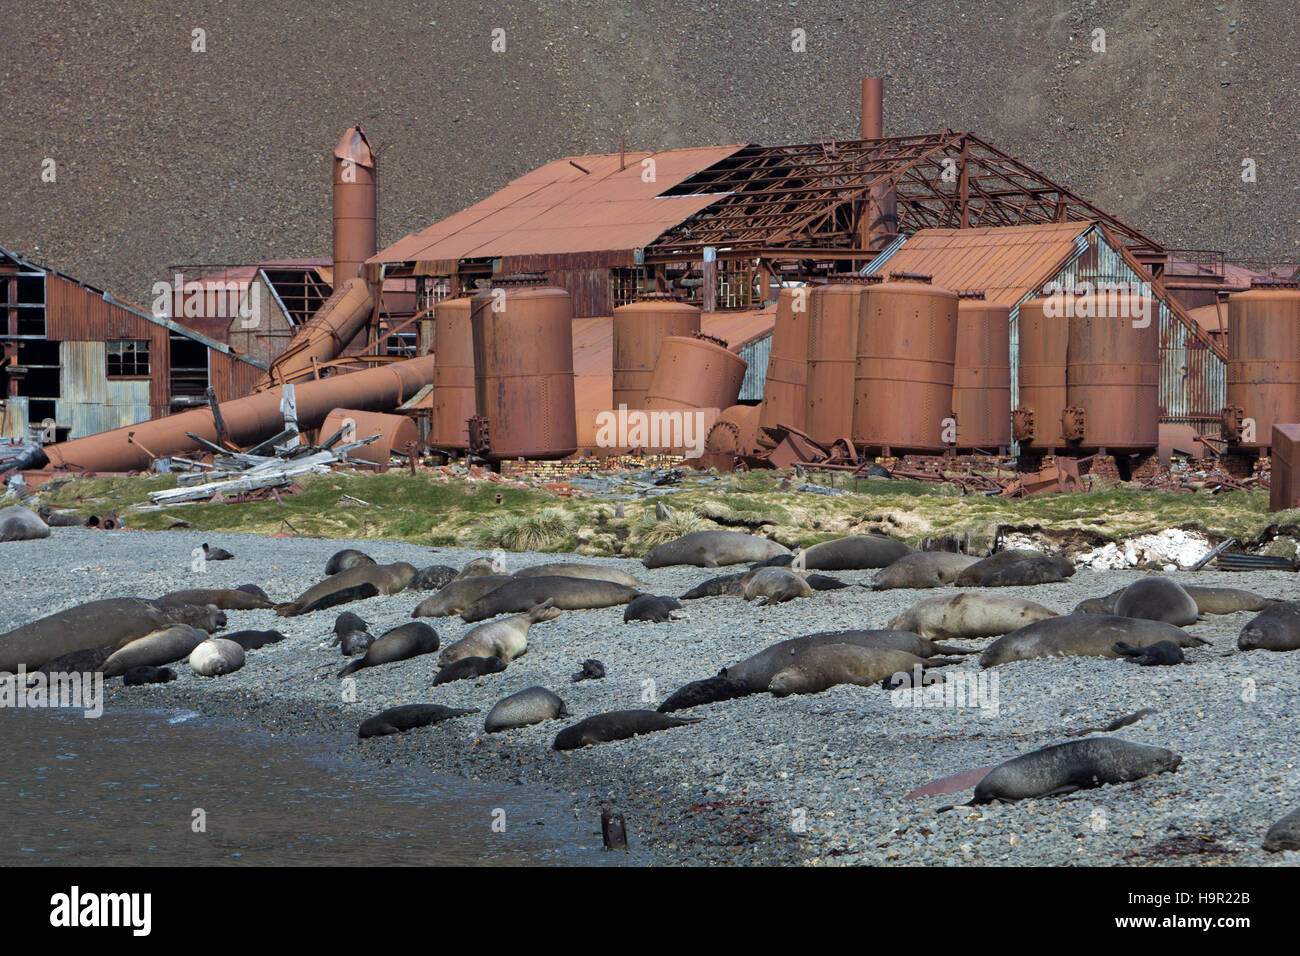 Southern elephant seals and Antarctic Fur seals in front of old whaling station at Stromness harbor, South Georgia - Stock Image